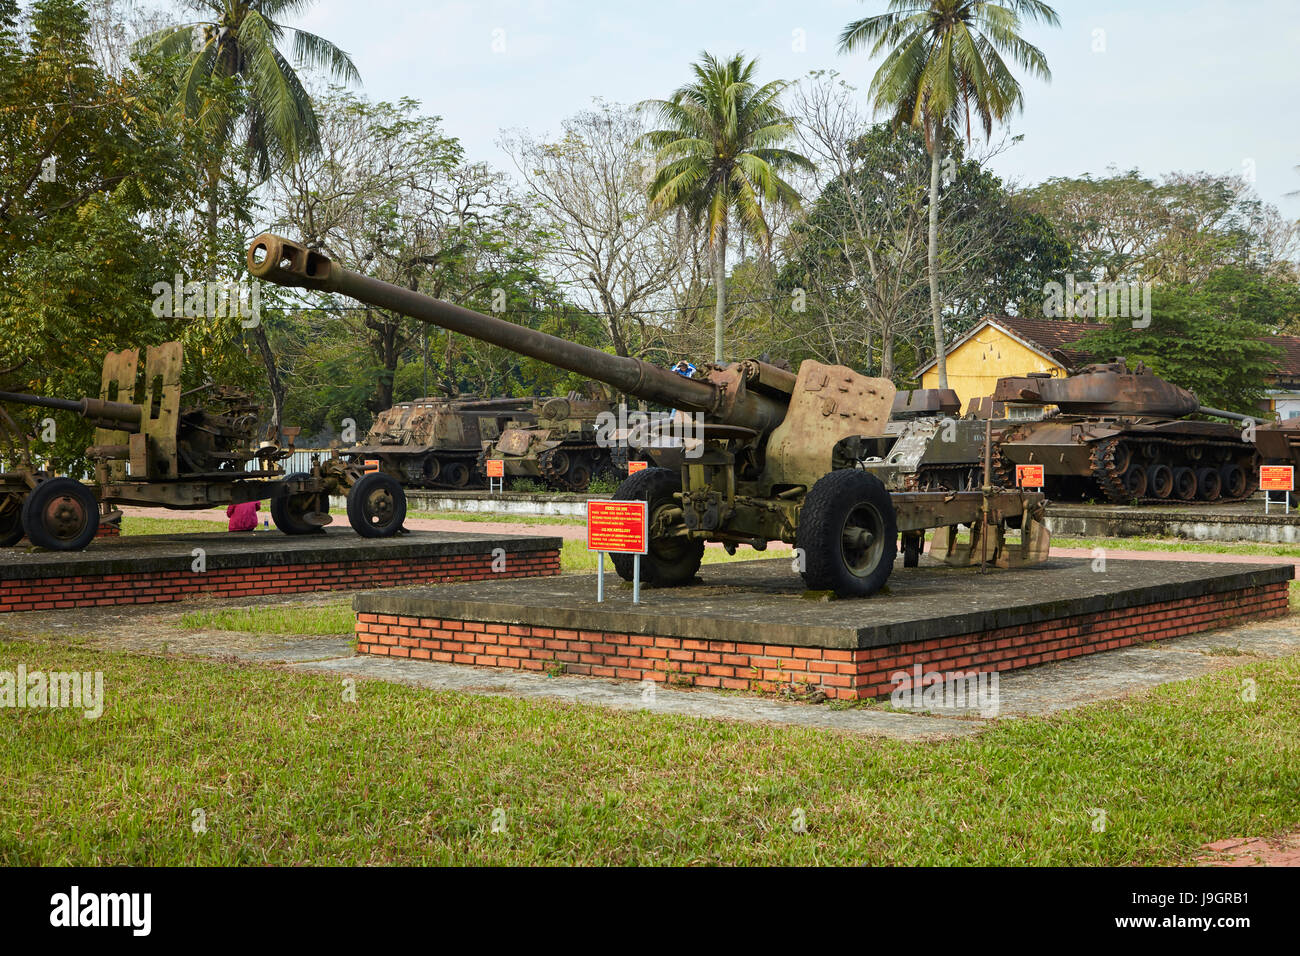 Soviet D-74 122 mm field gun, Military Museum, Hue, Thua Thien-Hue Province, North Central Coast, Vietnam - Stock Image